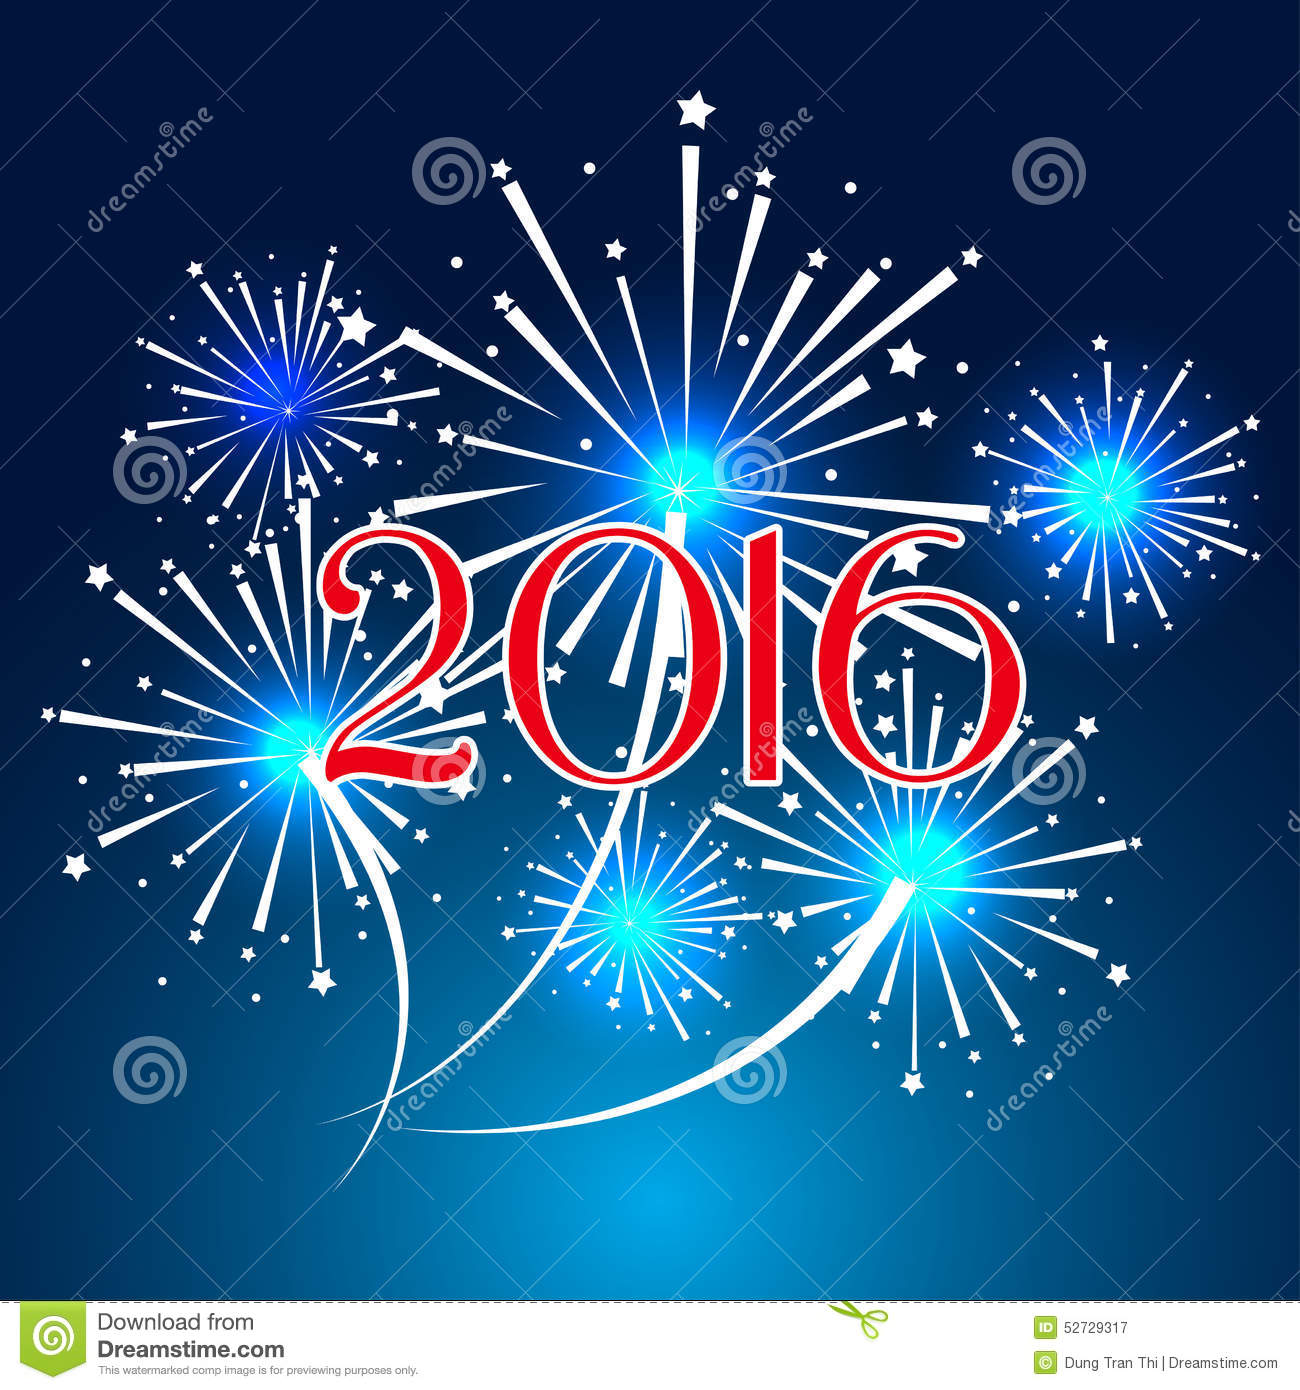 Happy New Year 2016 Images Wallpaper 17361 Wallpaper computer 1300x1390